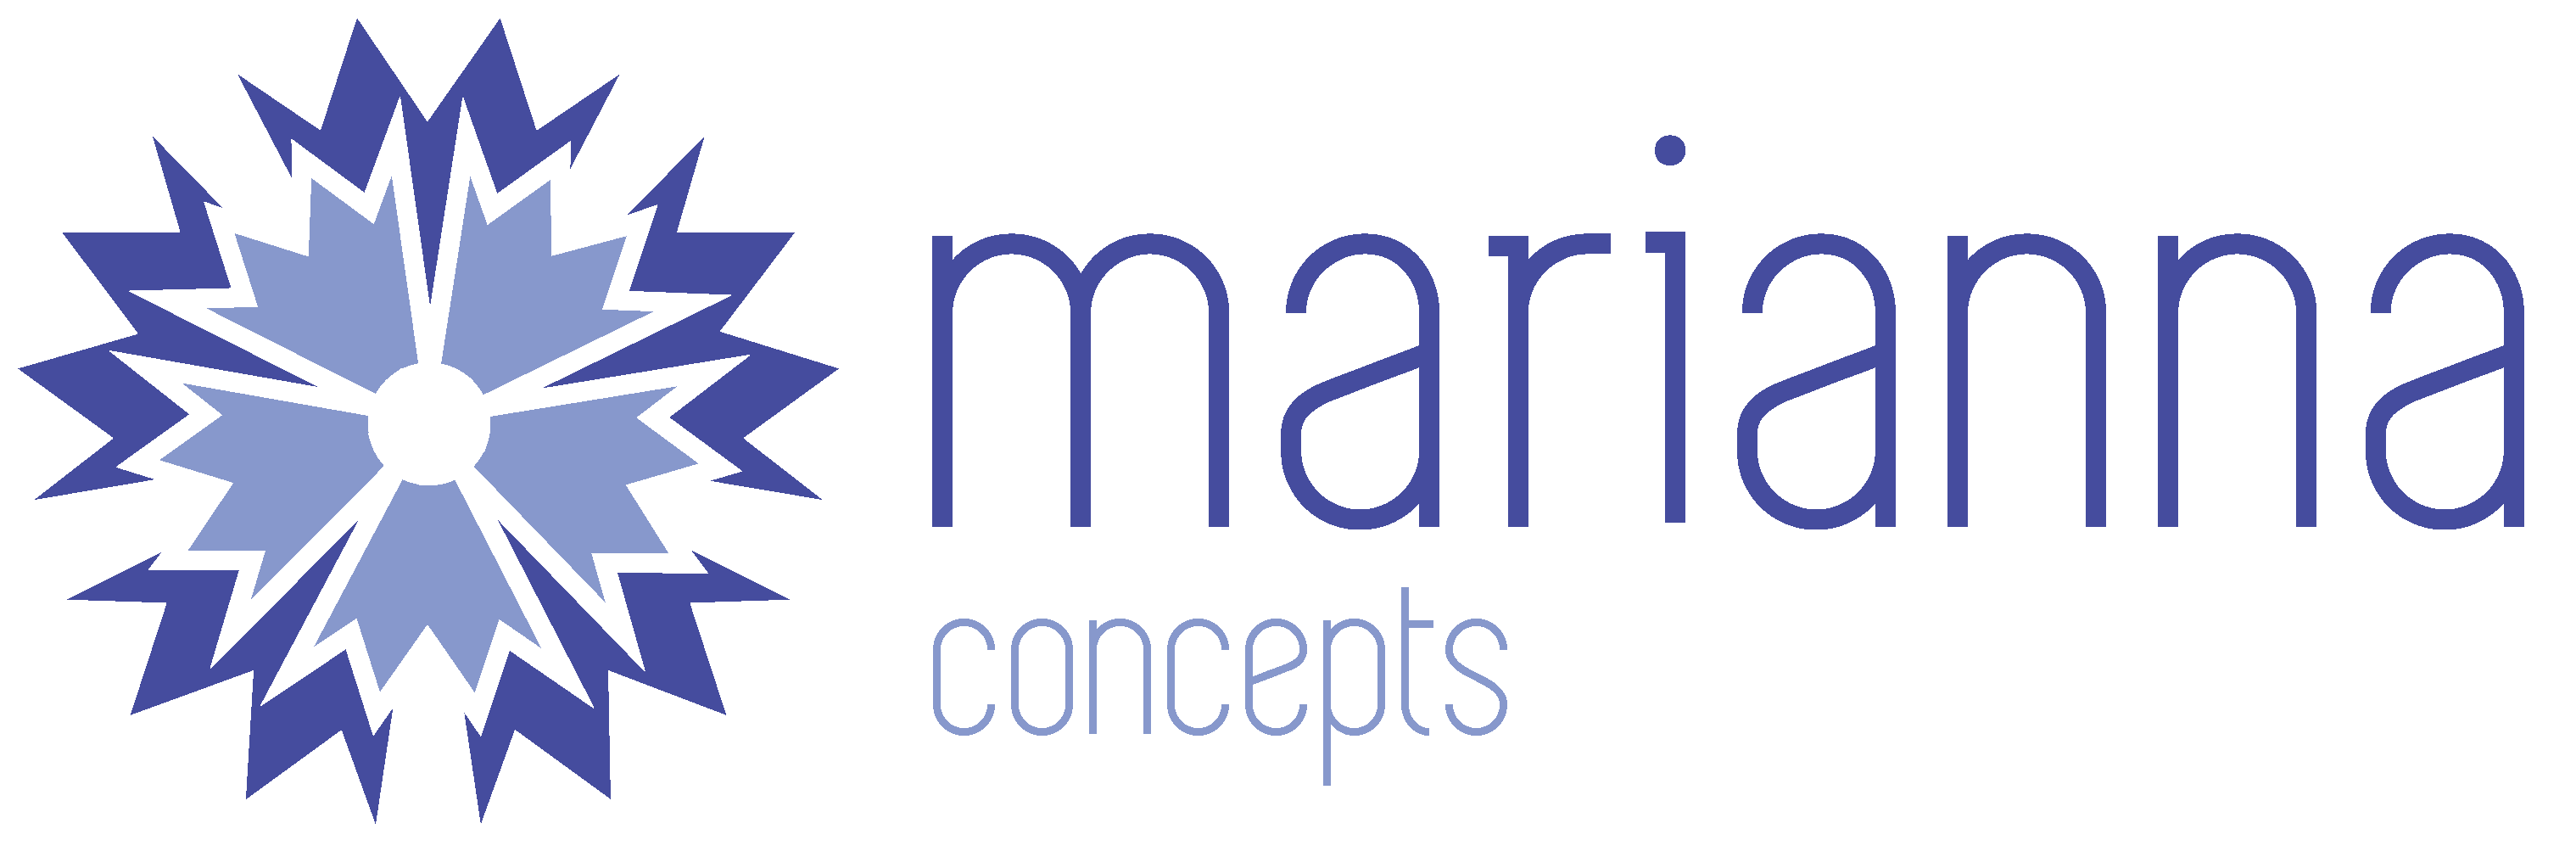 Marianna Concepts